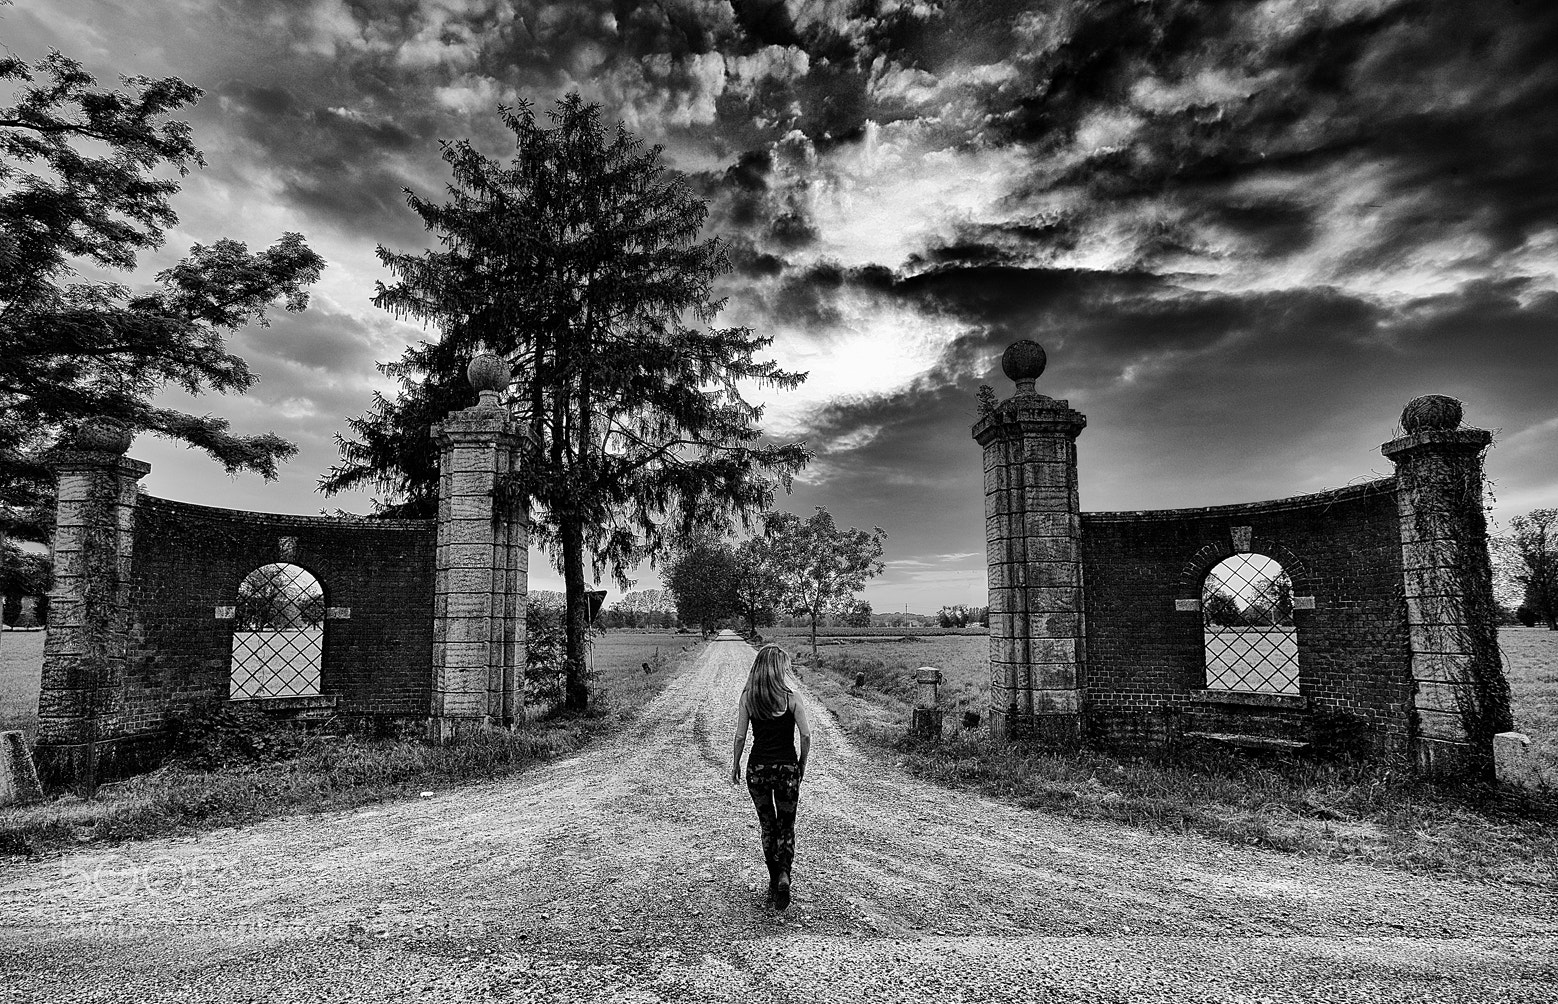 Photograph The gate by Marco Redaelli on 500px